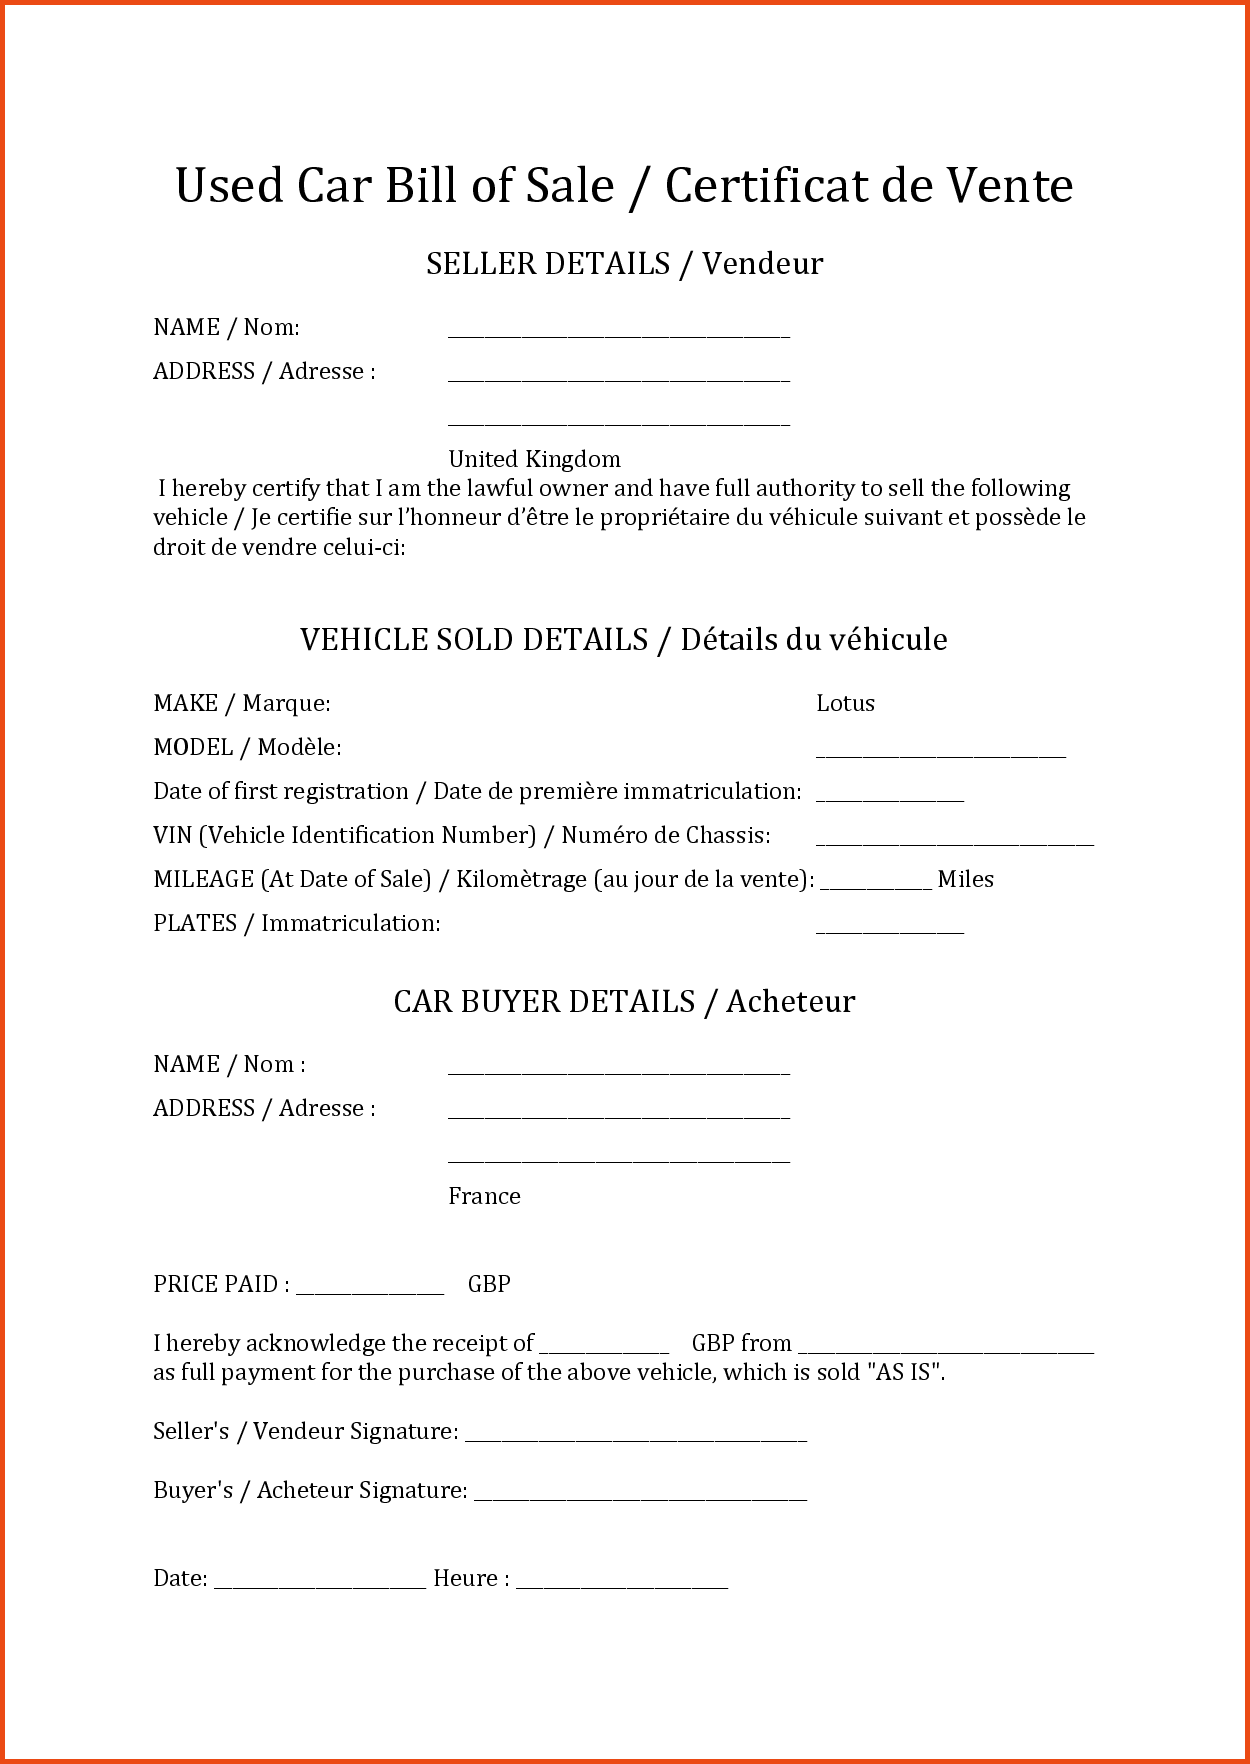 Samples Of Bill Of Sale for Car and Bill Of Sale Examplemple Bill Of Sale Sponsorship Letter